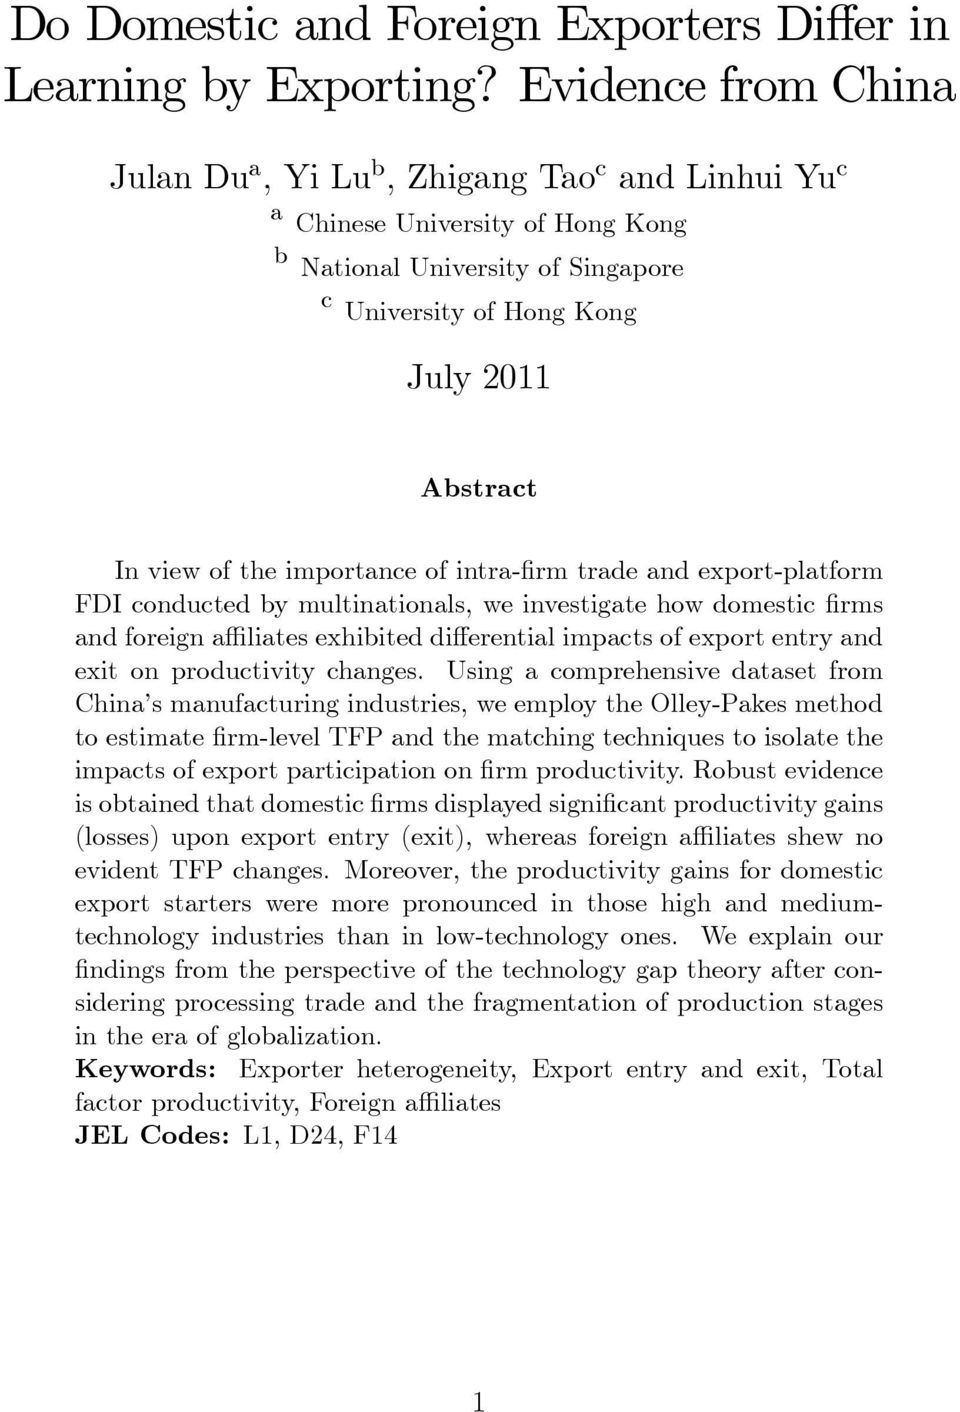 importance of intra- rm trade and export-platform FDI conducted by multinationals, we investigate how domestic rms and foreign a liates exhibited di erential impacts of export entry and exit on